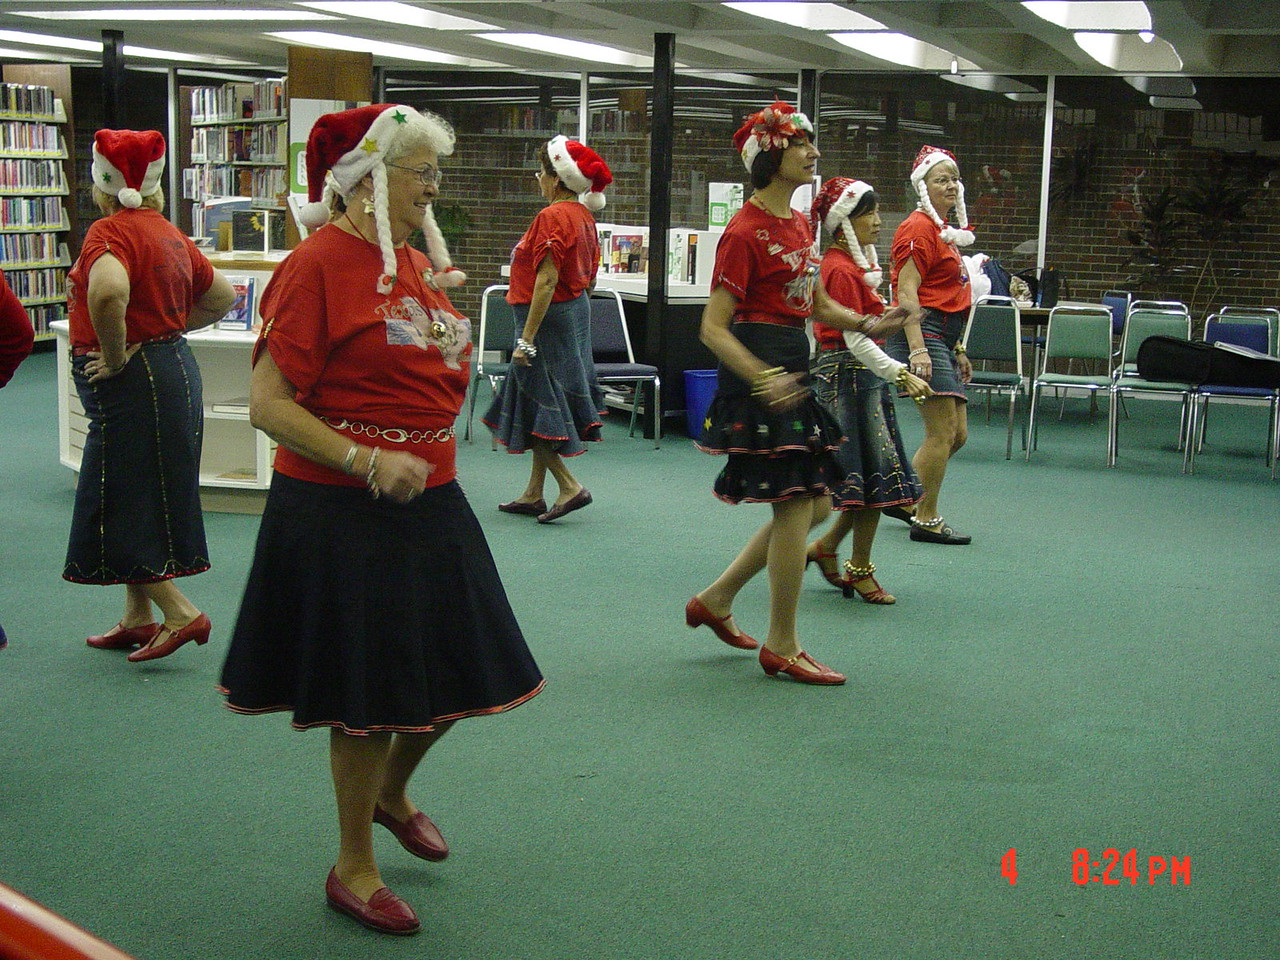 Texas Line Dancers stepping in line to Christmas music